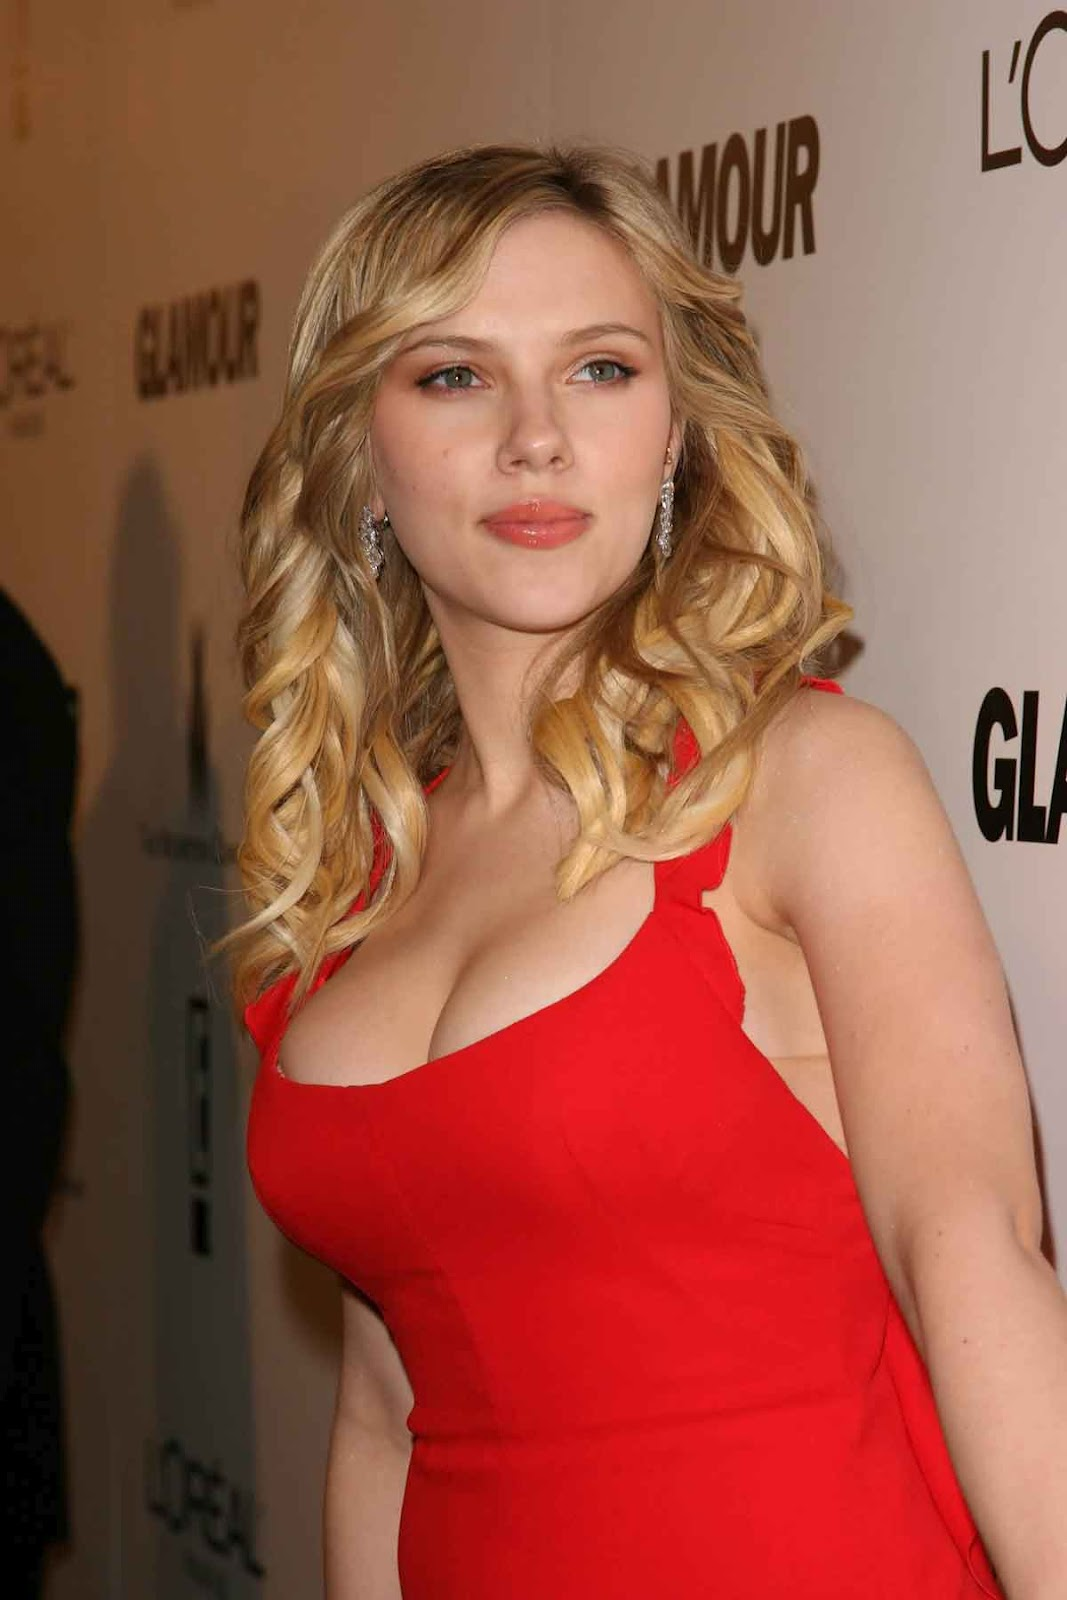 Scarlett Johansson Sexiest Cleavage Show In Red Dress At -3866